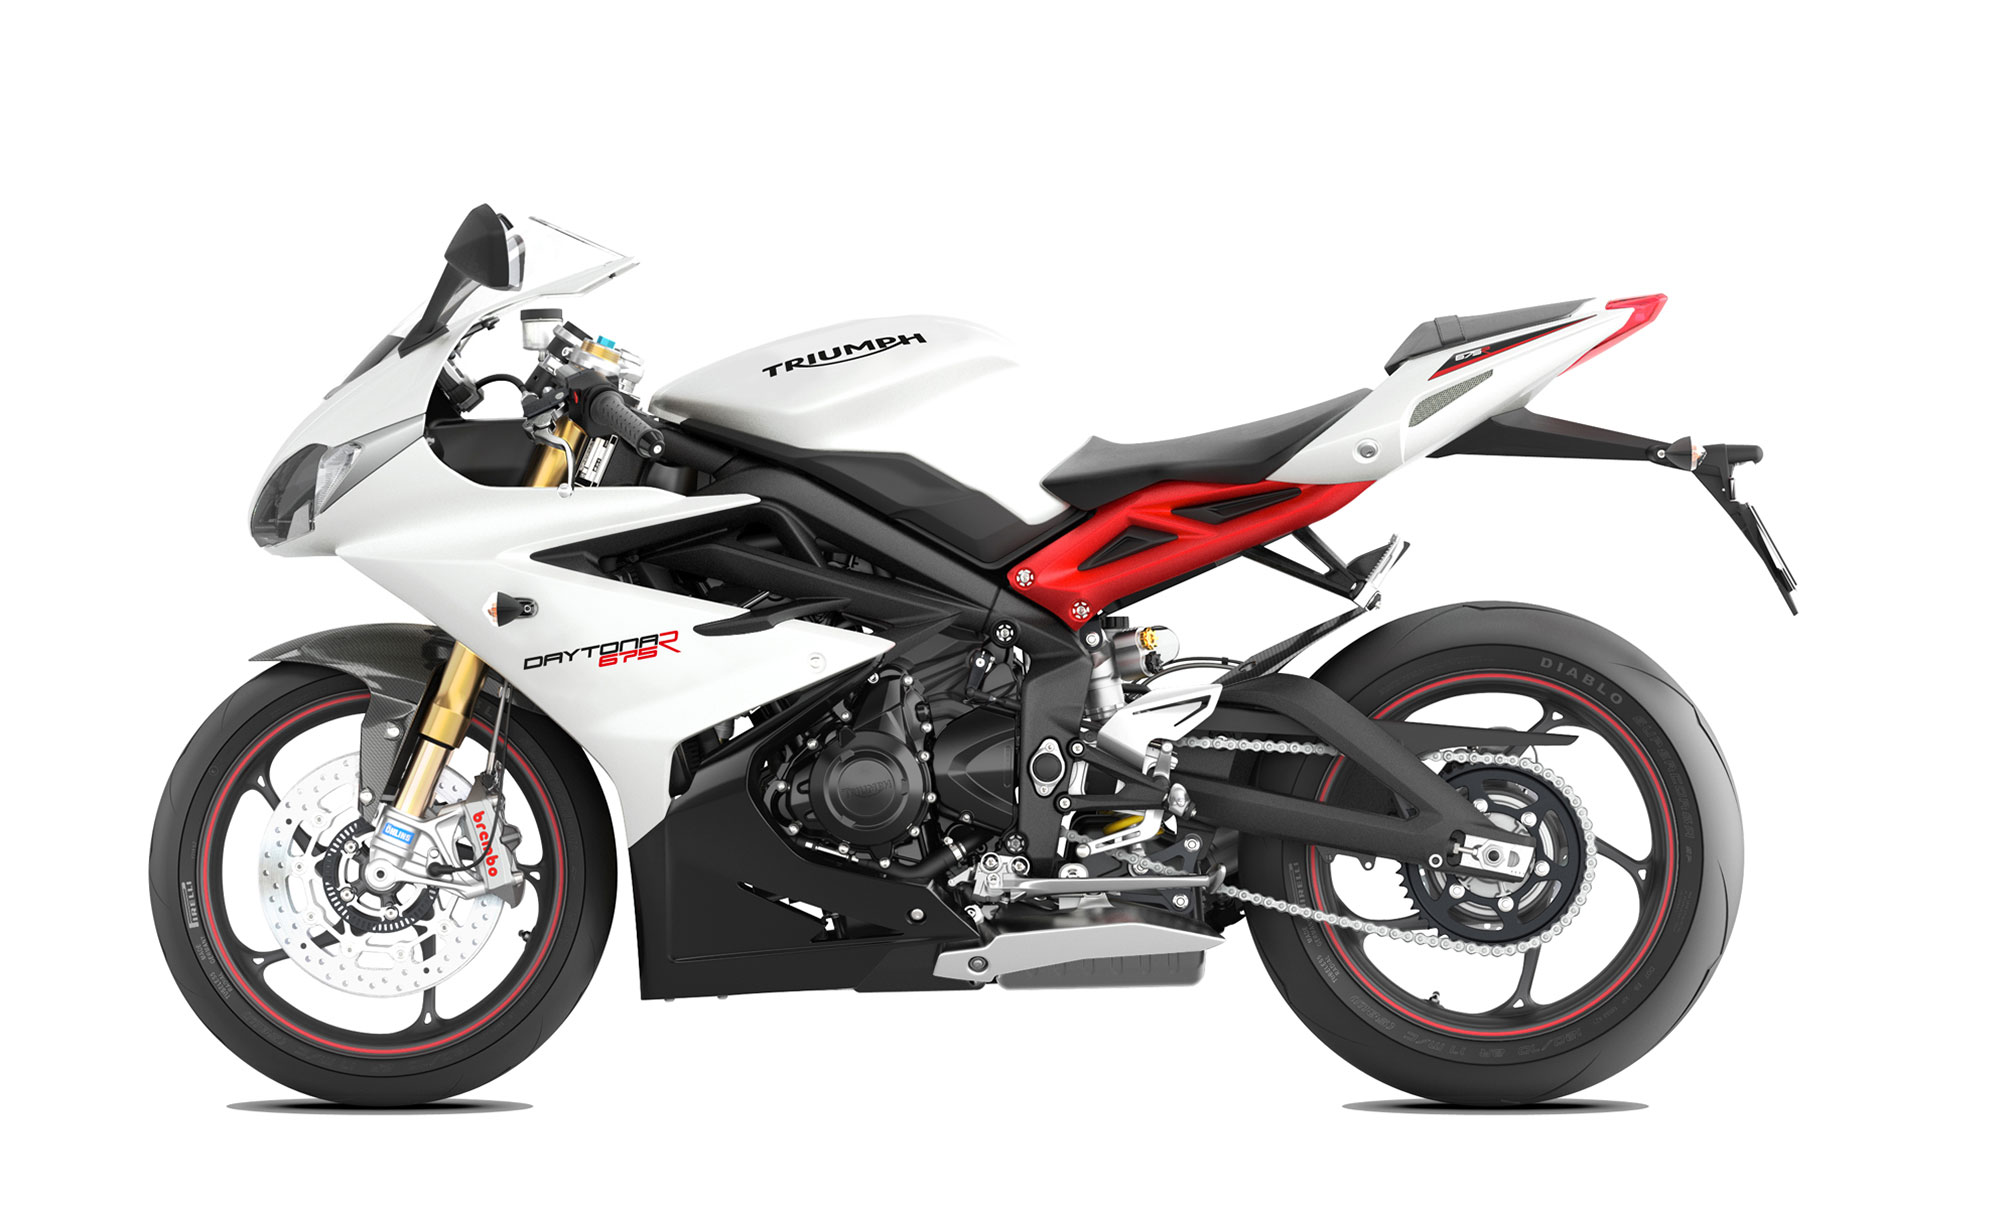 pc wallpaper Triumph Daytona 675R ABS 2015